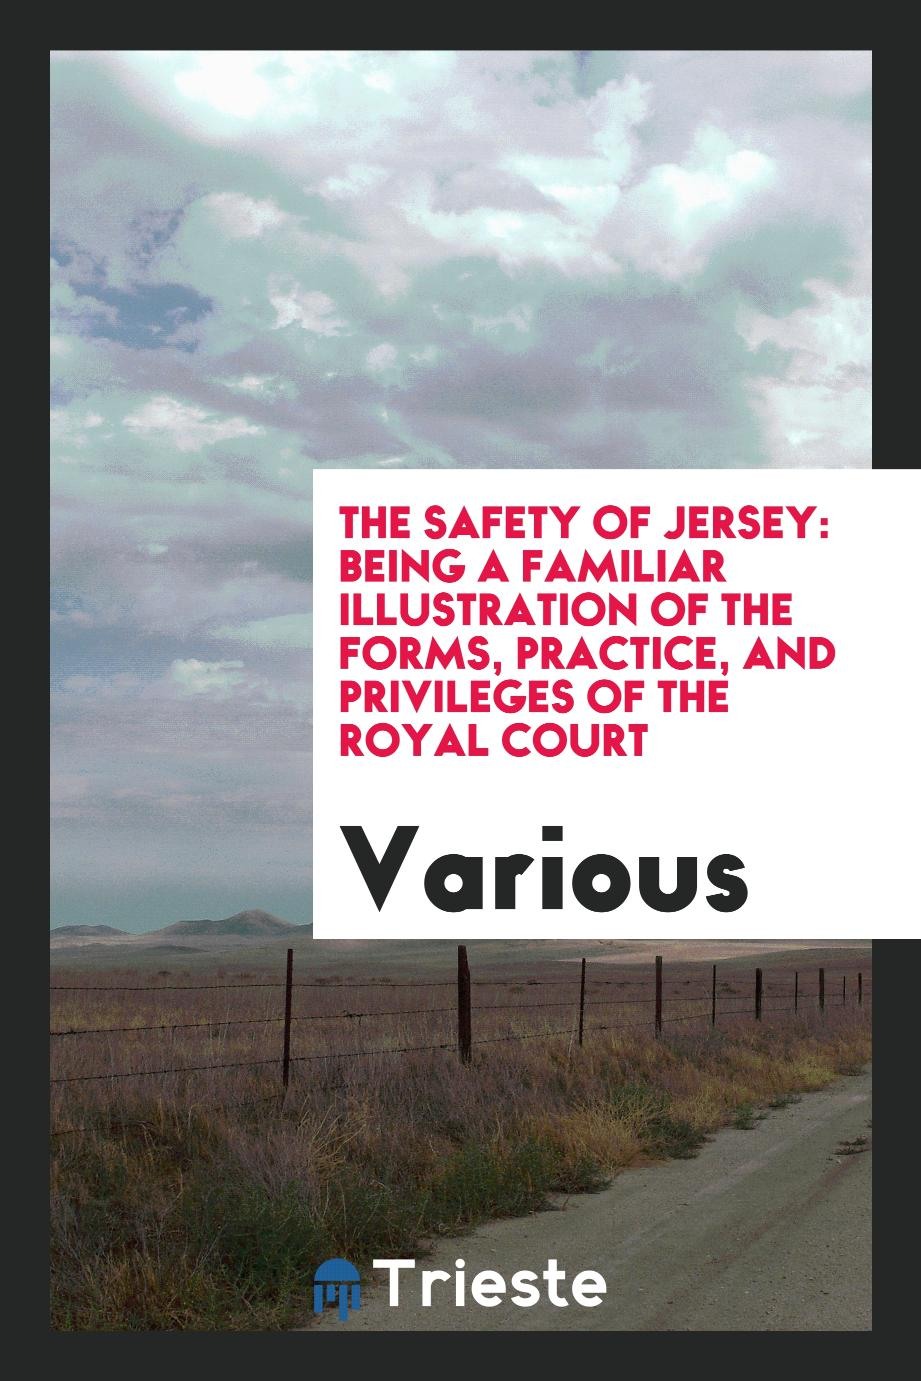 The safety of Jersey: being a familiar illustration of the forms, practice, and privileges of the Royal Court